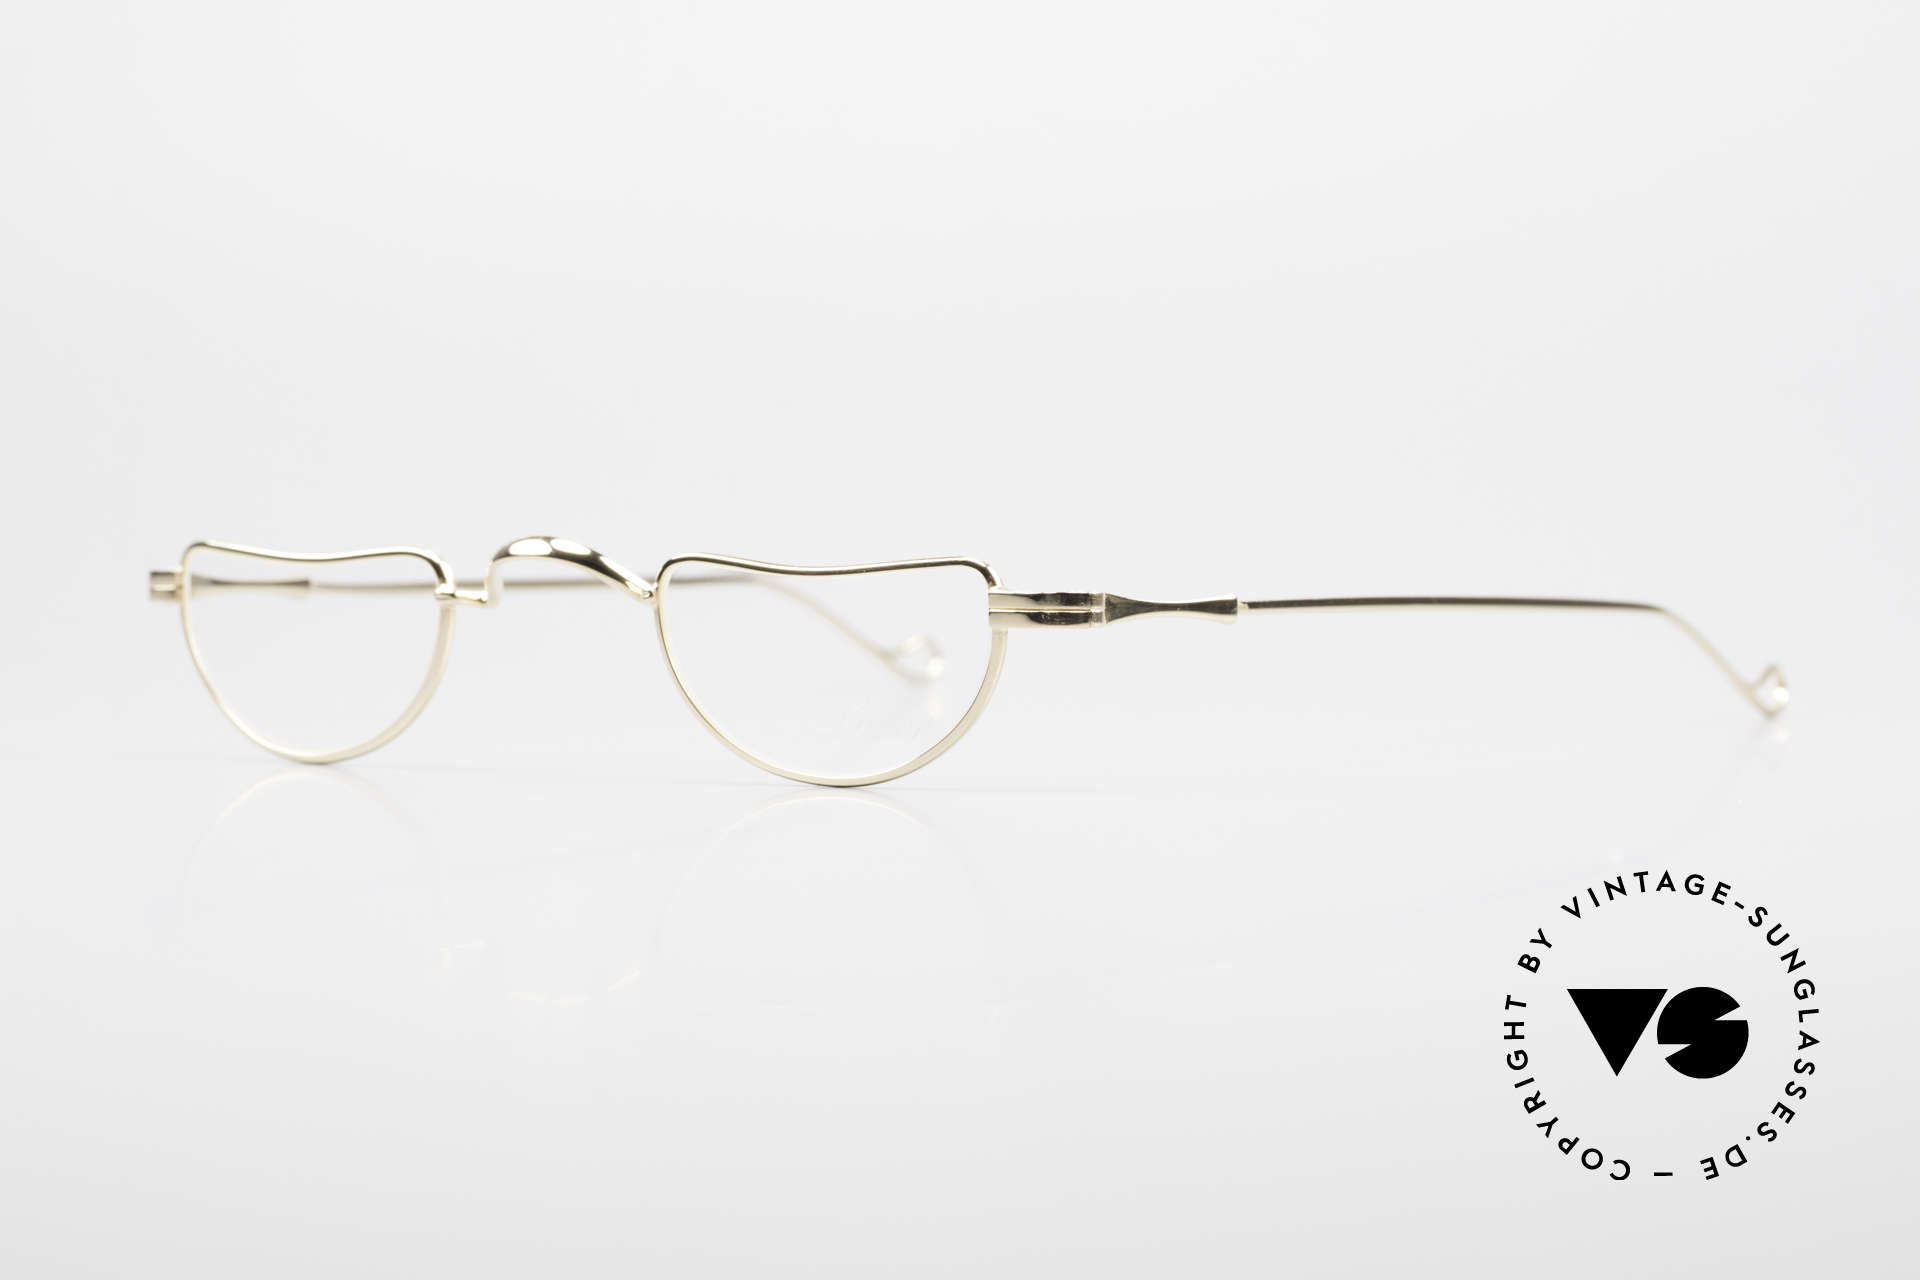 Lunor II 07 Gold Plated Reading Glasses, unisex model for ladies & gents; handmade in Germany, Made for Men and Women